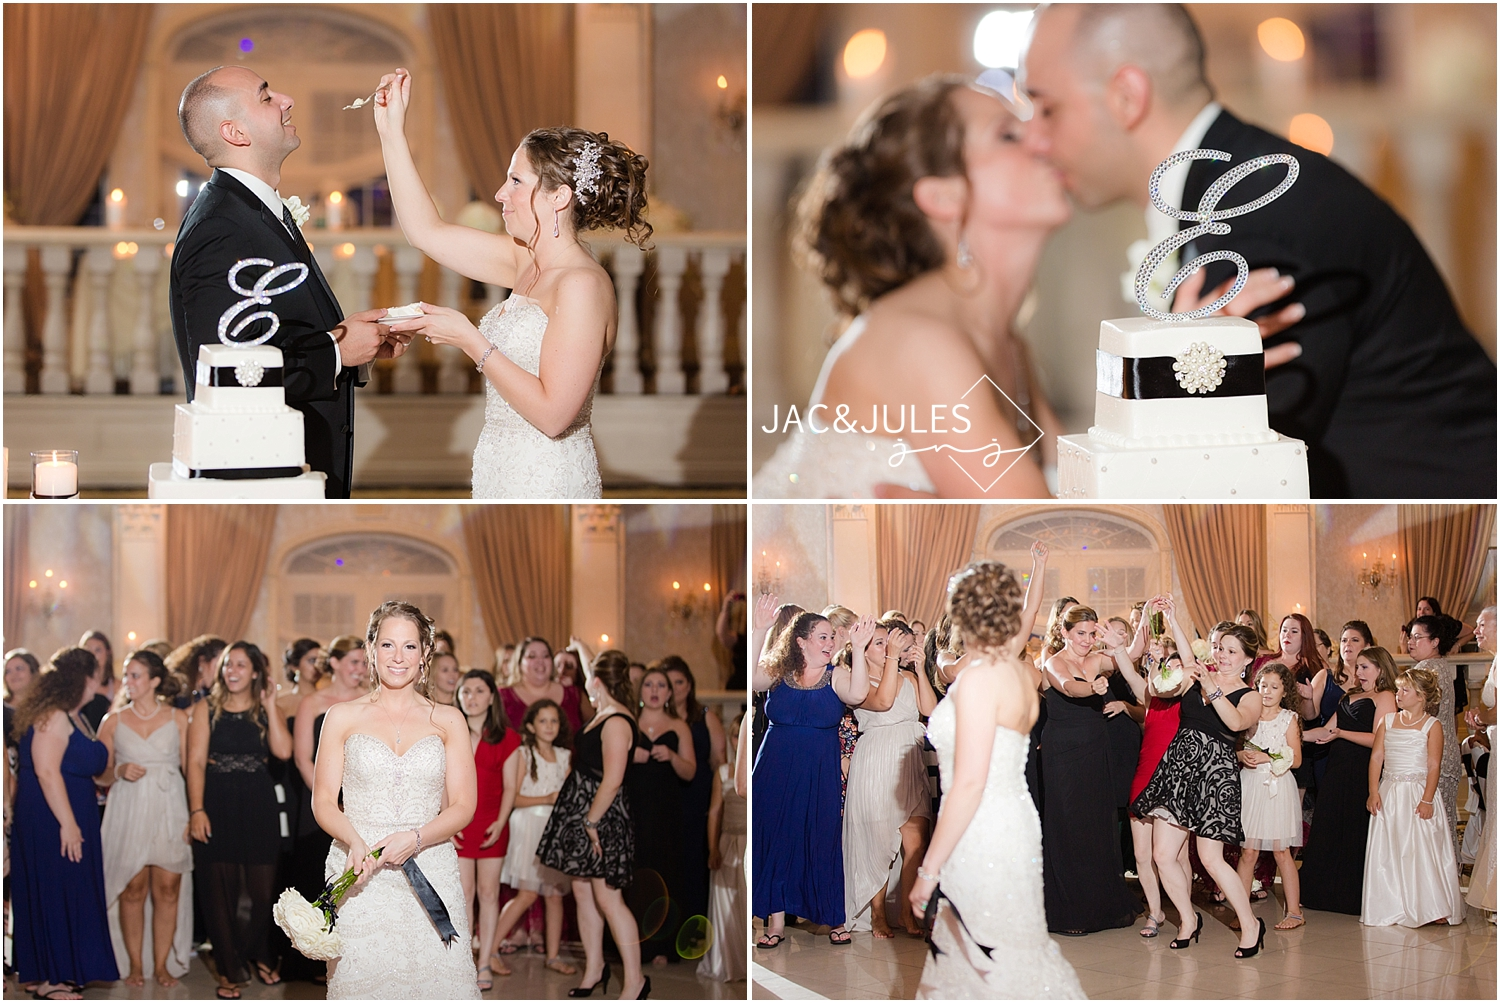 jacnjules photograph fun wedding reception at Nanina's in the Park